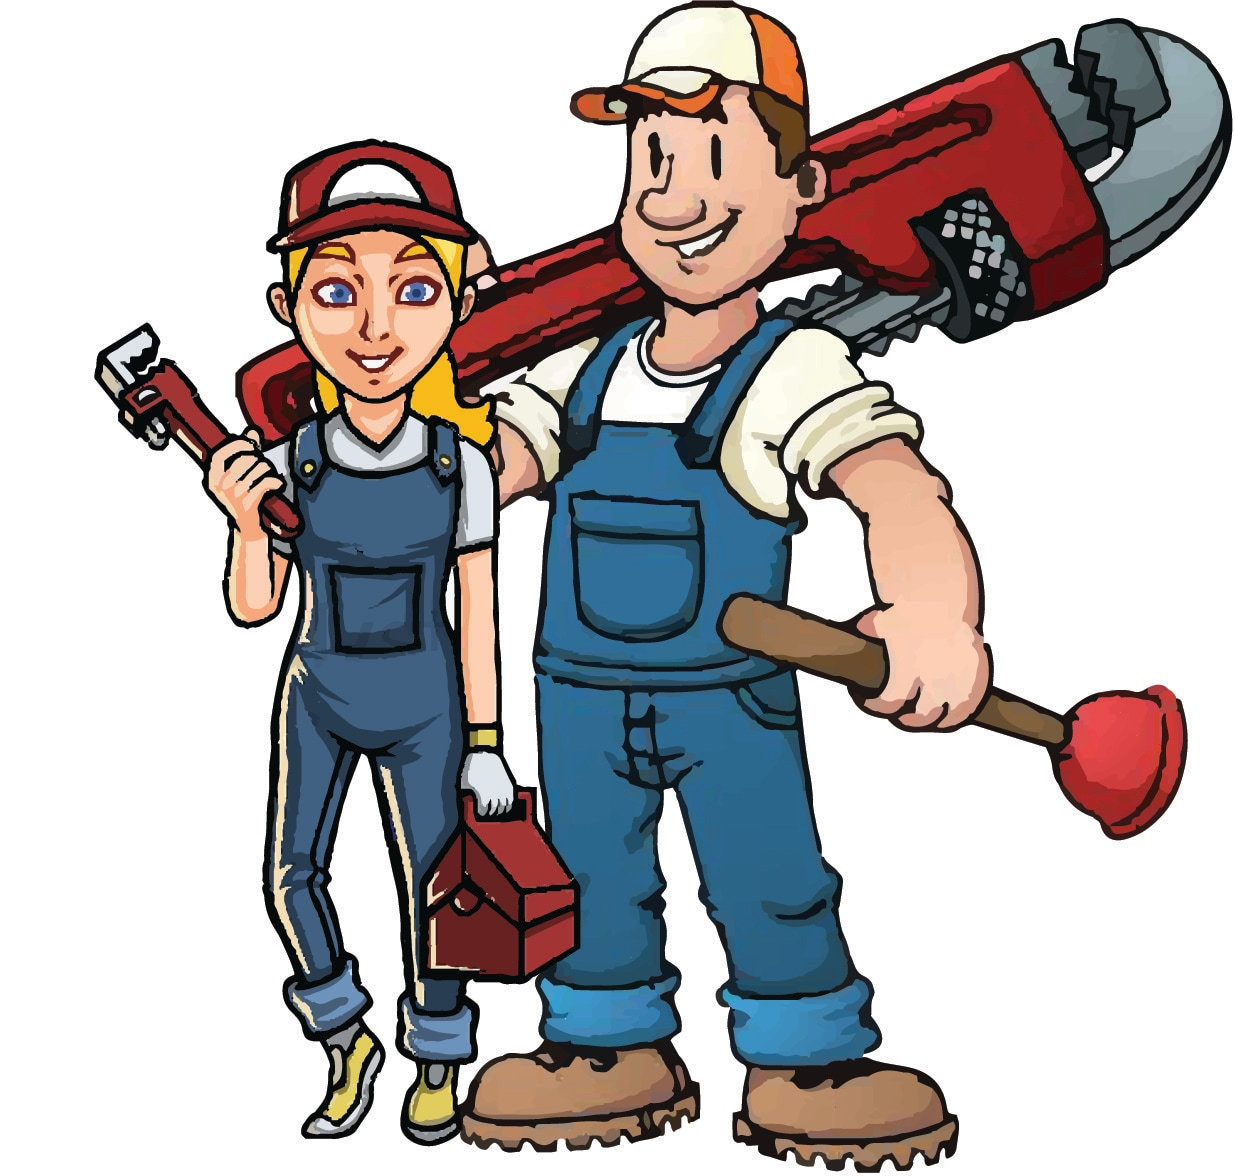 Fatherdaughter plumbing and Drain Service